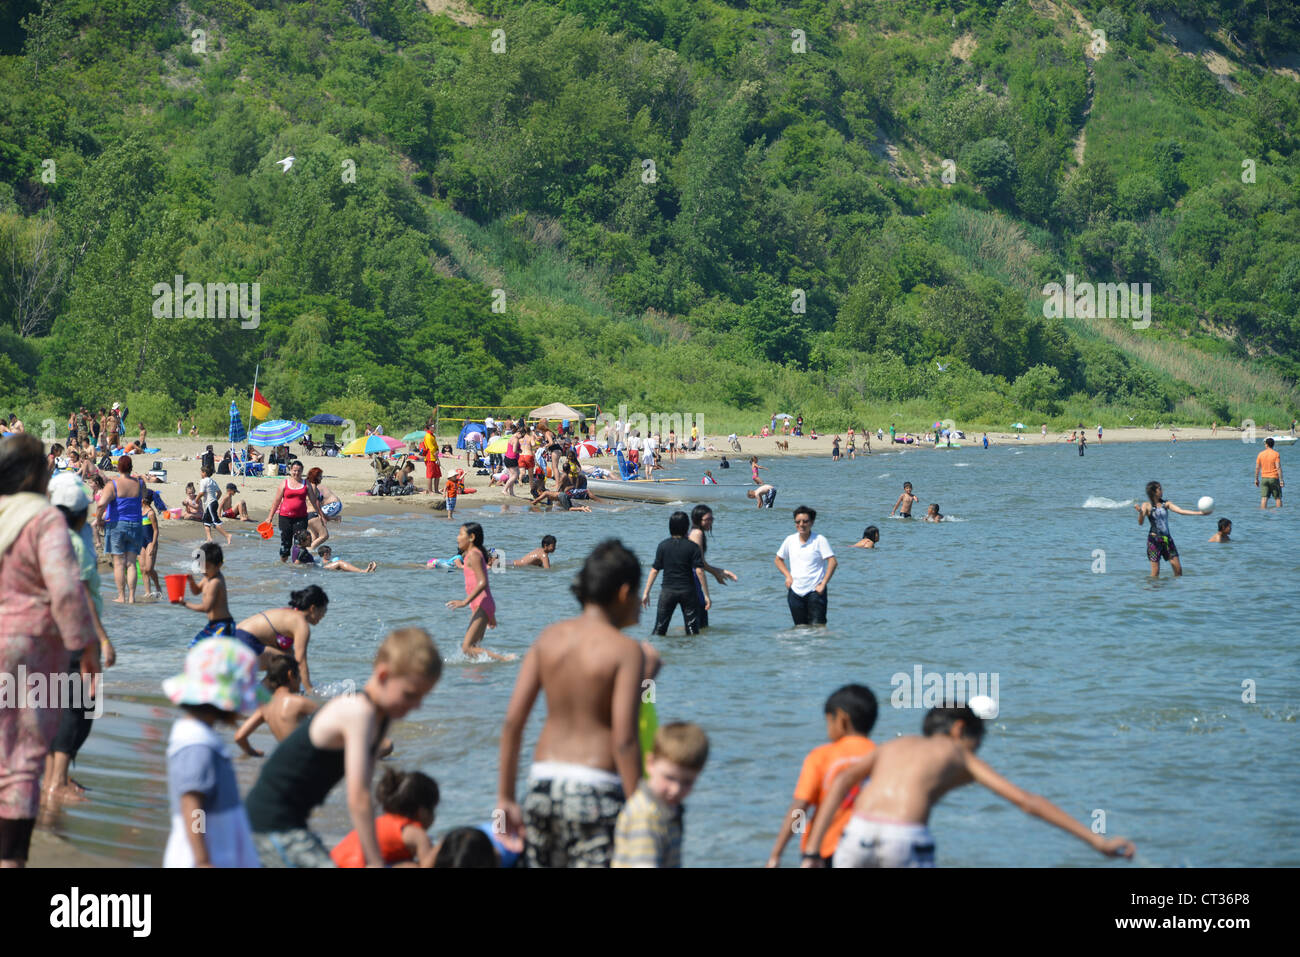 View of the beach at Scarborogh Bluffs - Stock Image